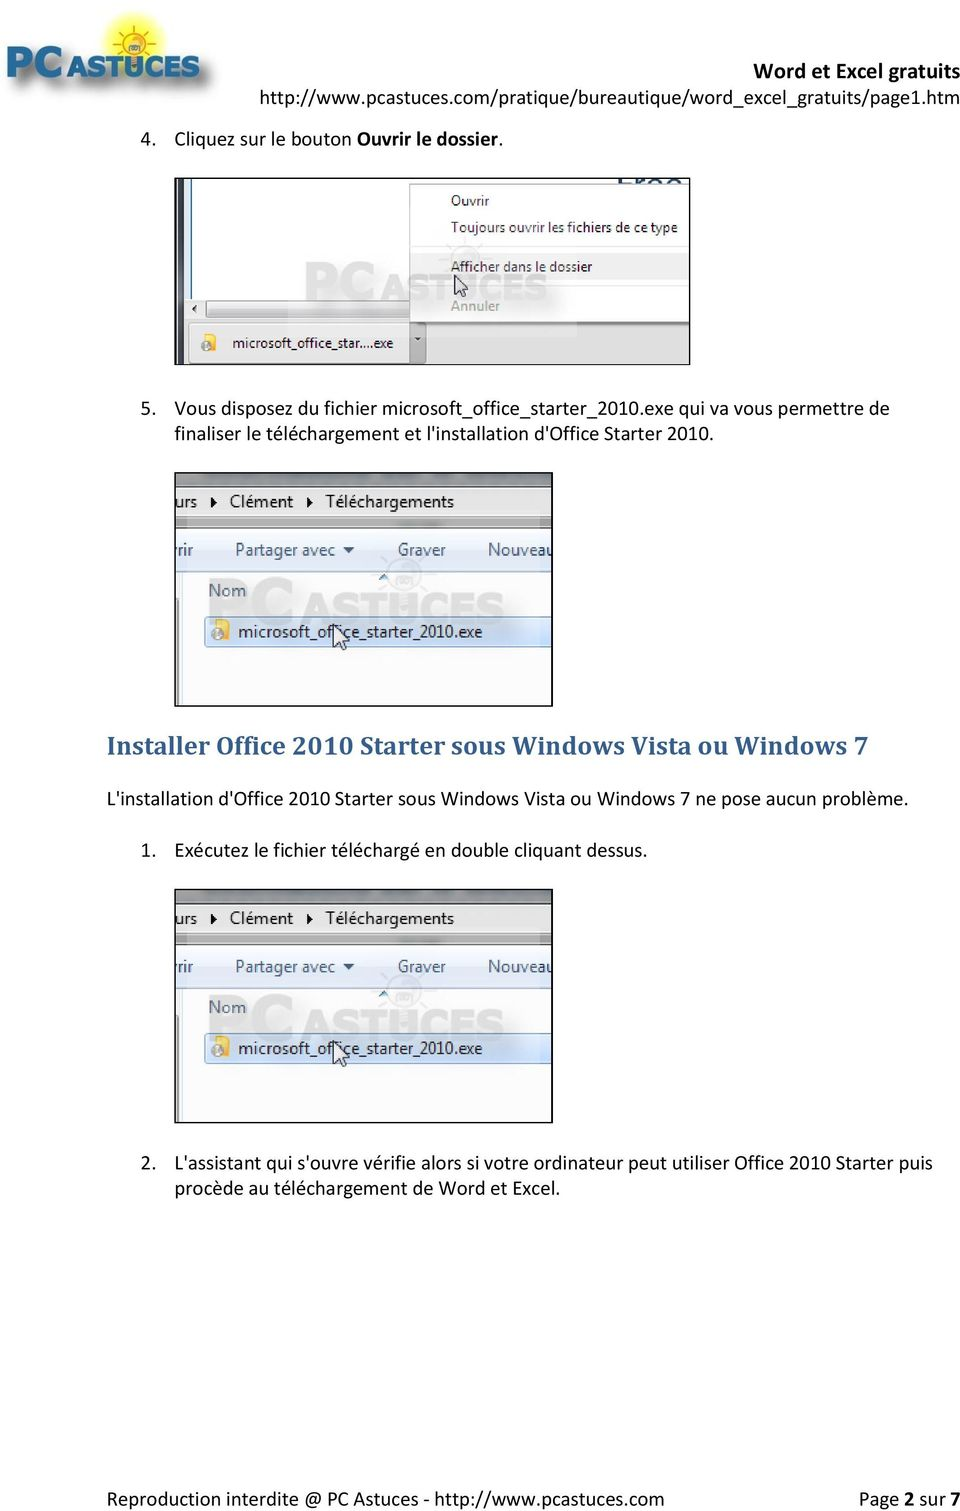 Installer Office 2010 Starter sous Windows Vista ou Windows 7 L'installation d'office 2010 Starter sous Windows Vista ou Windows 7 ne pose aucun problème. 1.